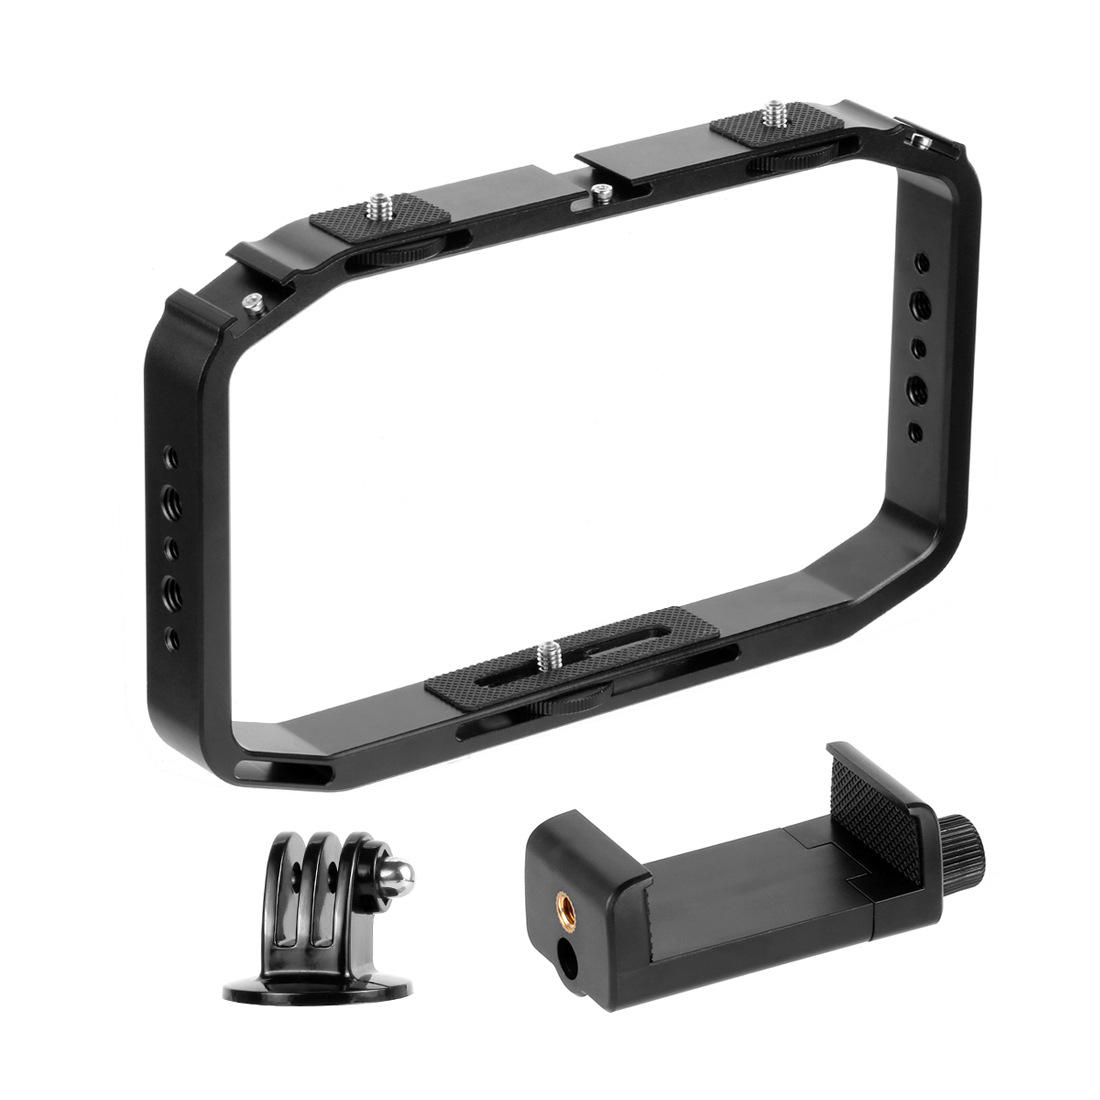 PULUZ PU418 Metal Handheld Stabilizer Rig with Cold Shoe Mount for Smarphone DSLR Camera Action Sports Camera - 3